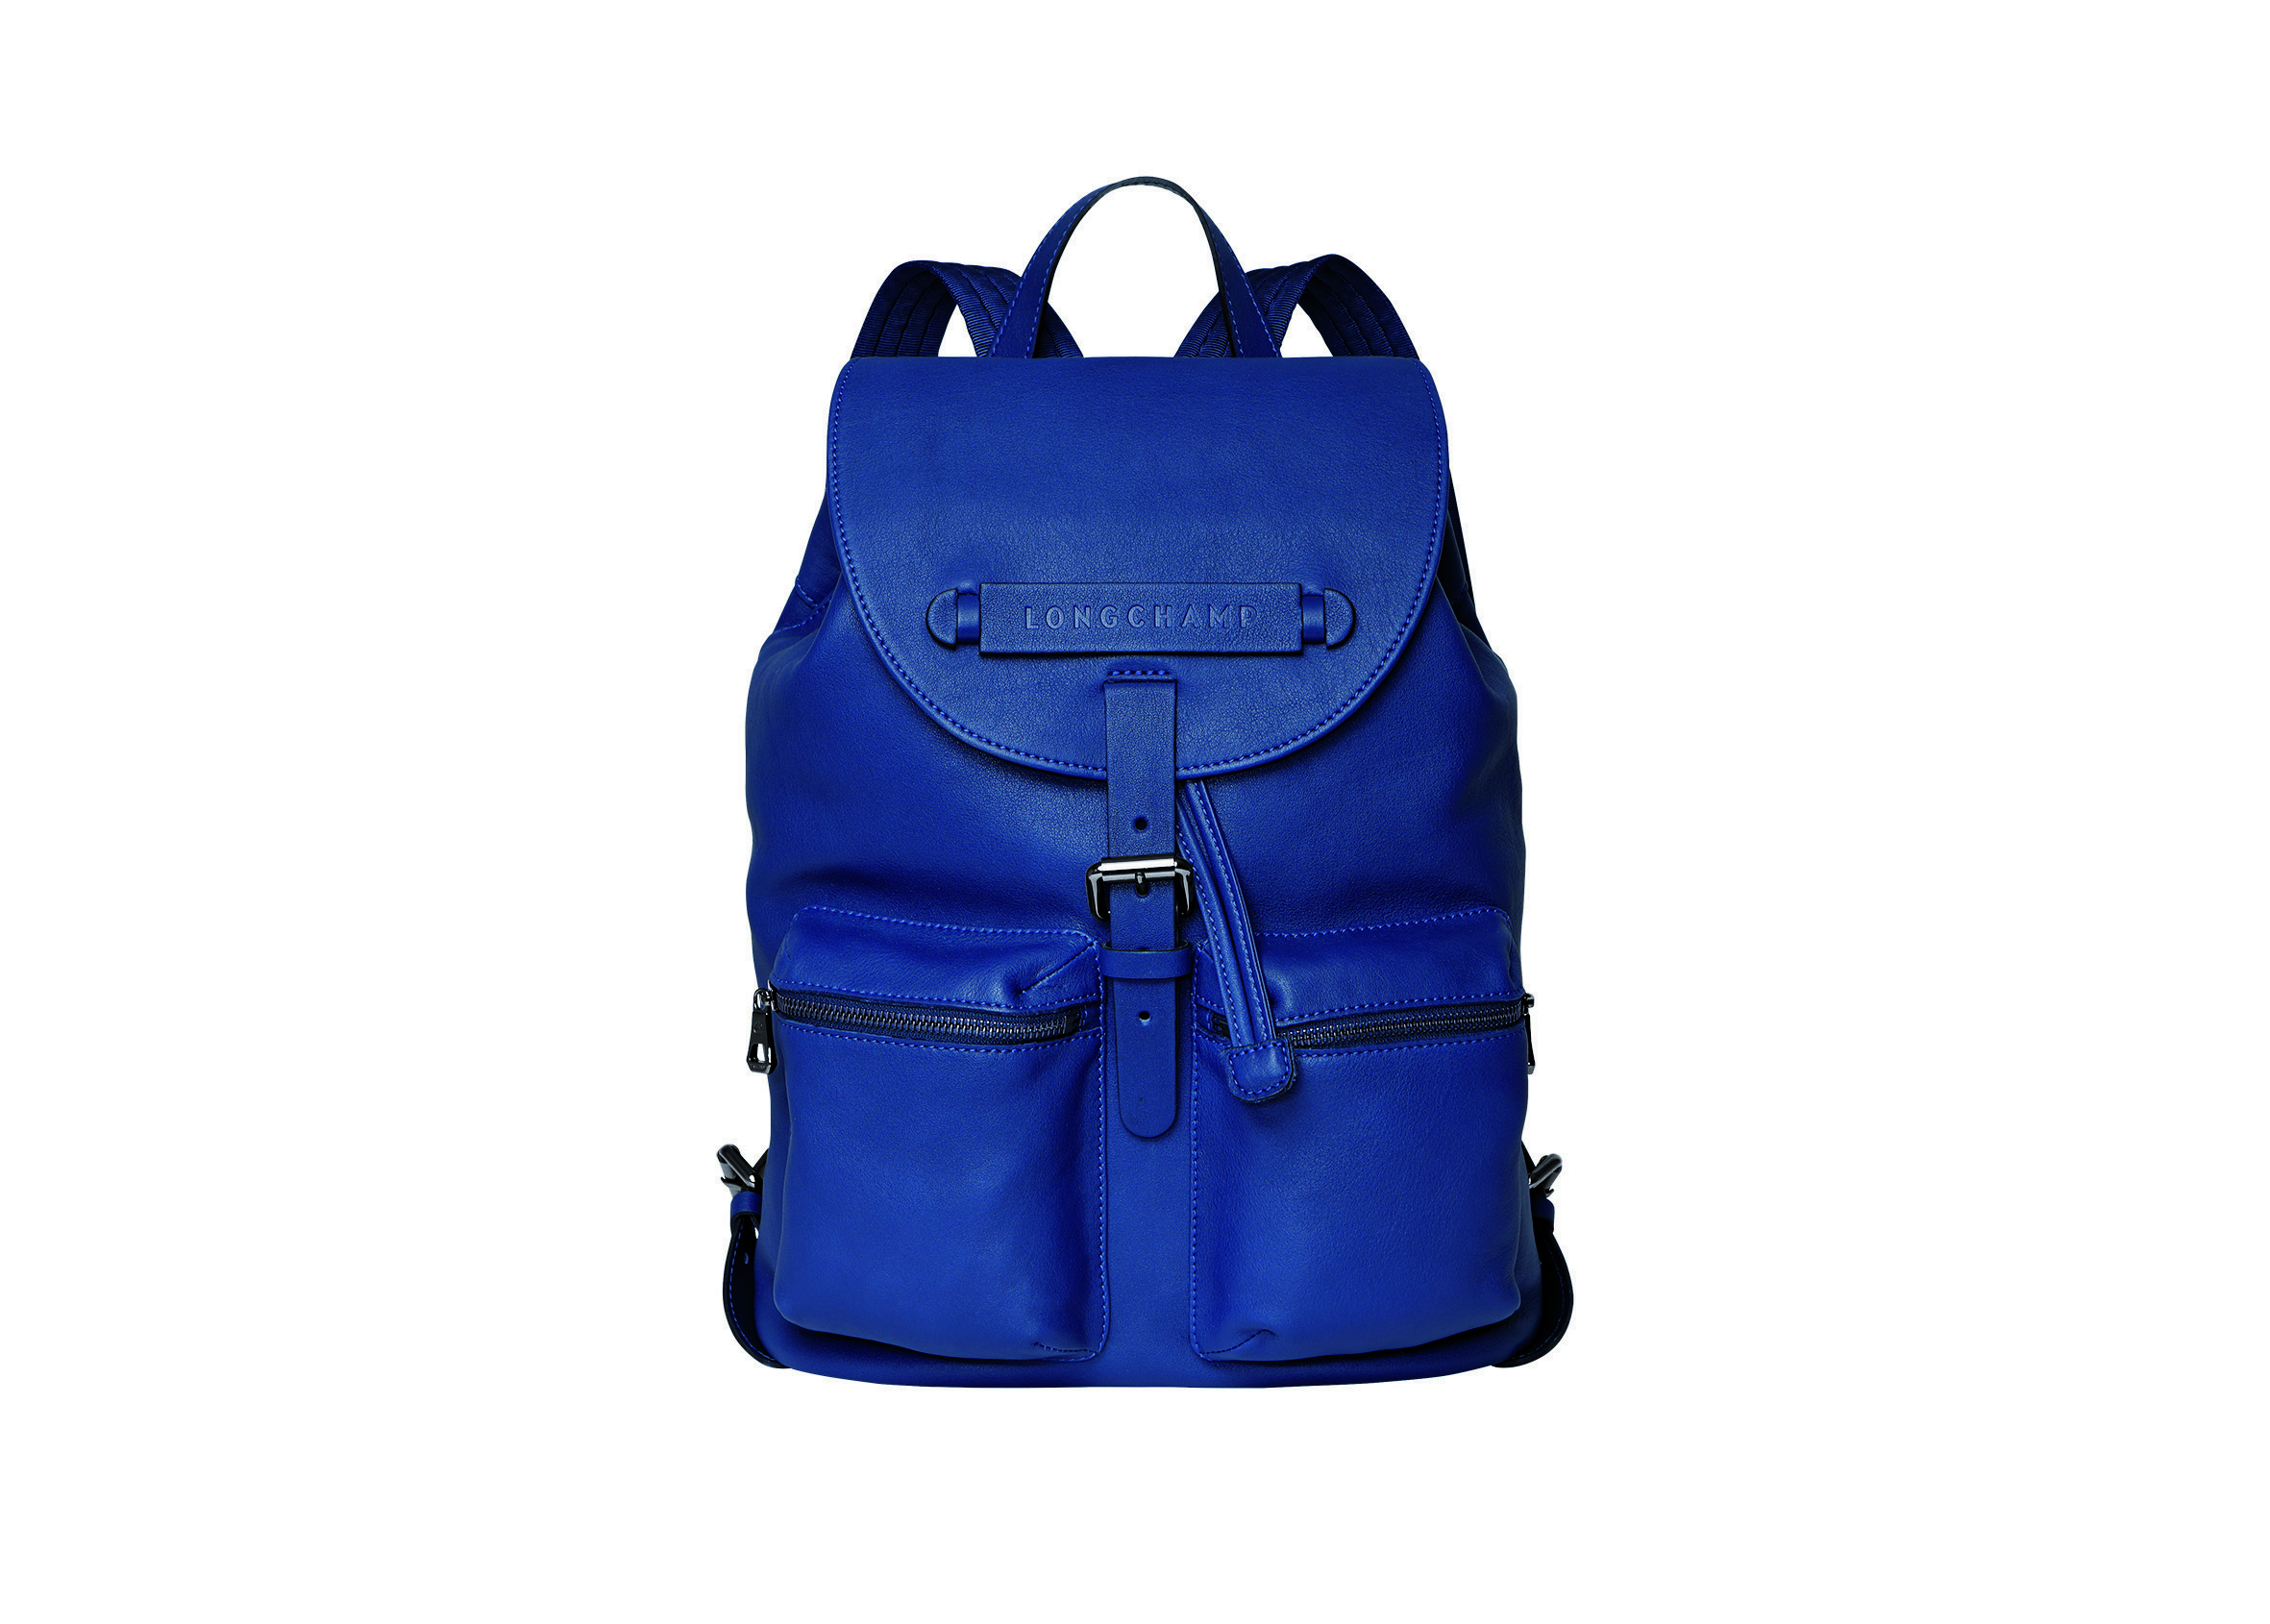 CITY SLICKER. The Zanzibar 3D backpack